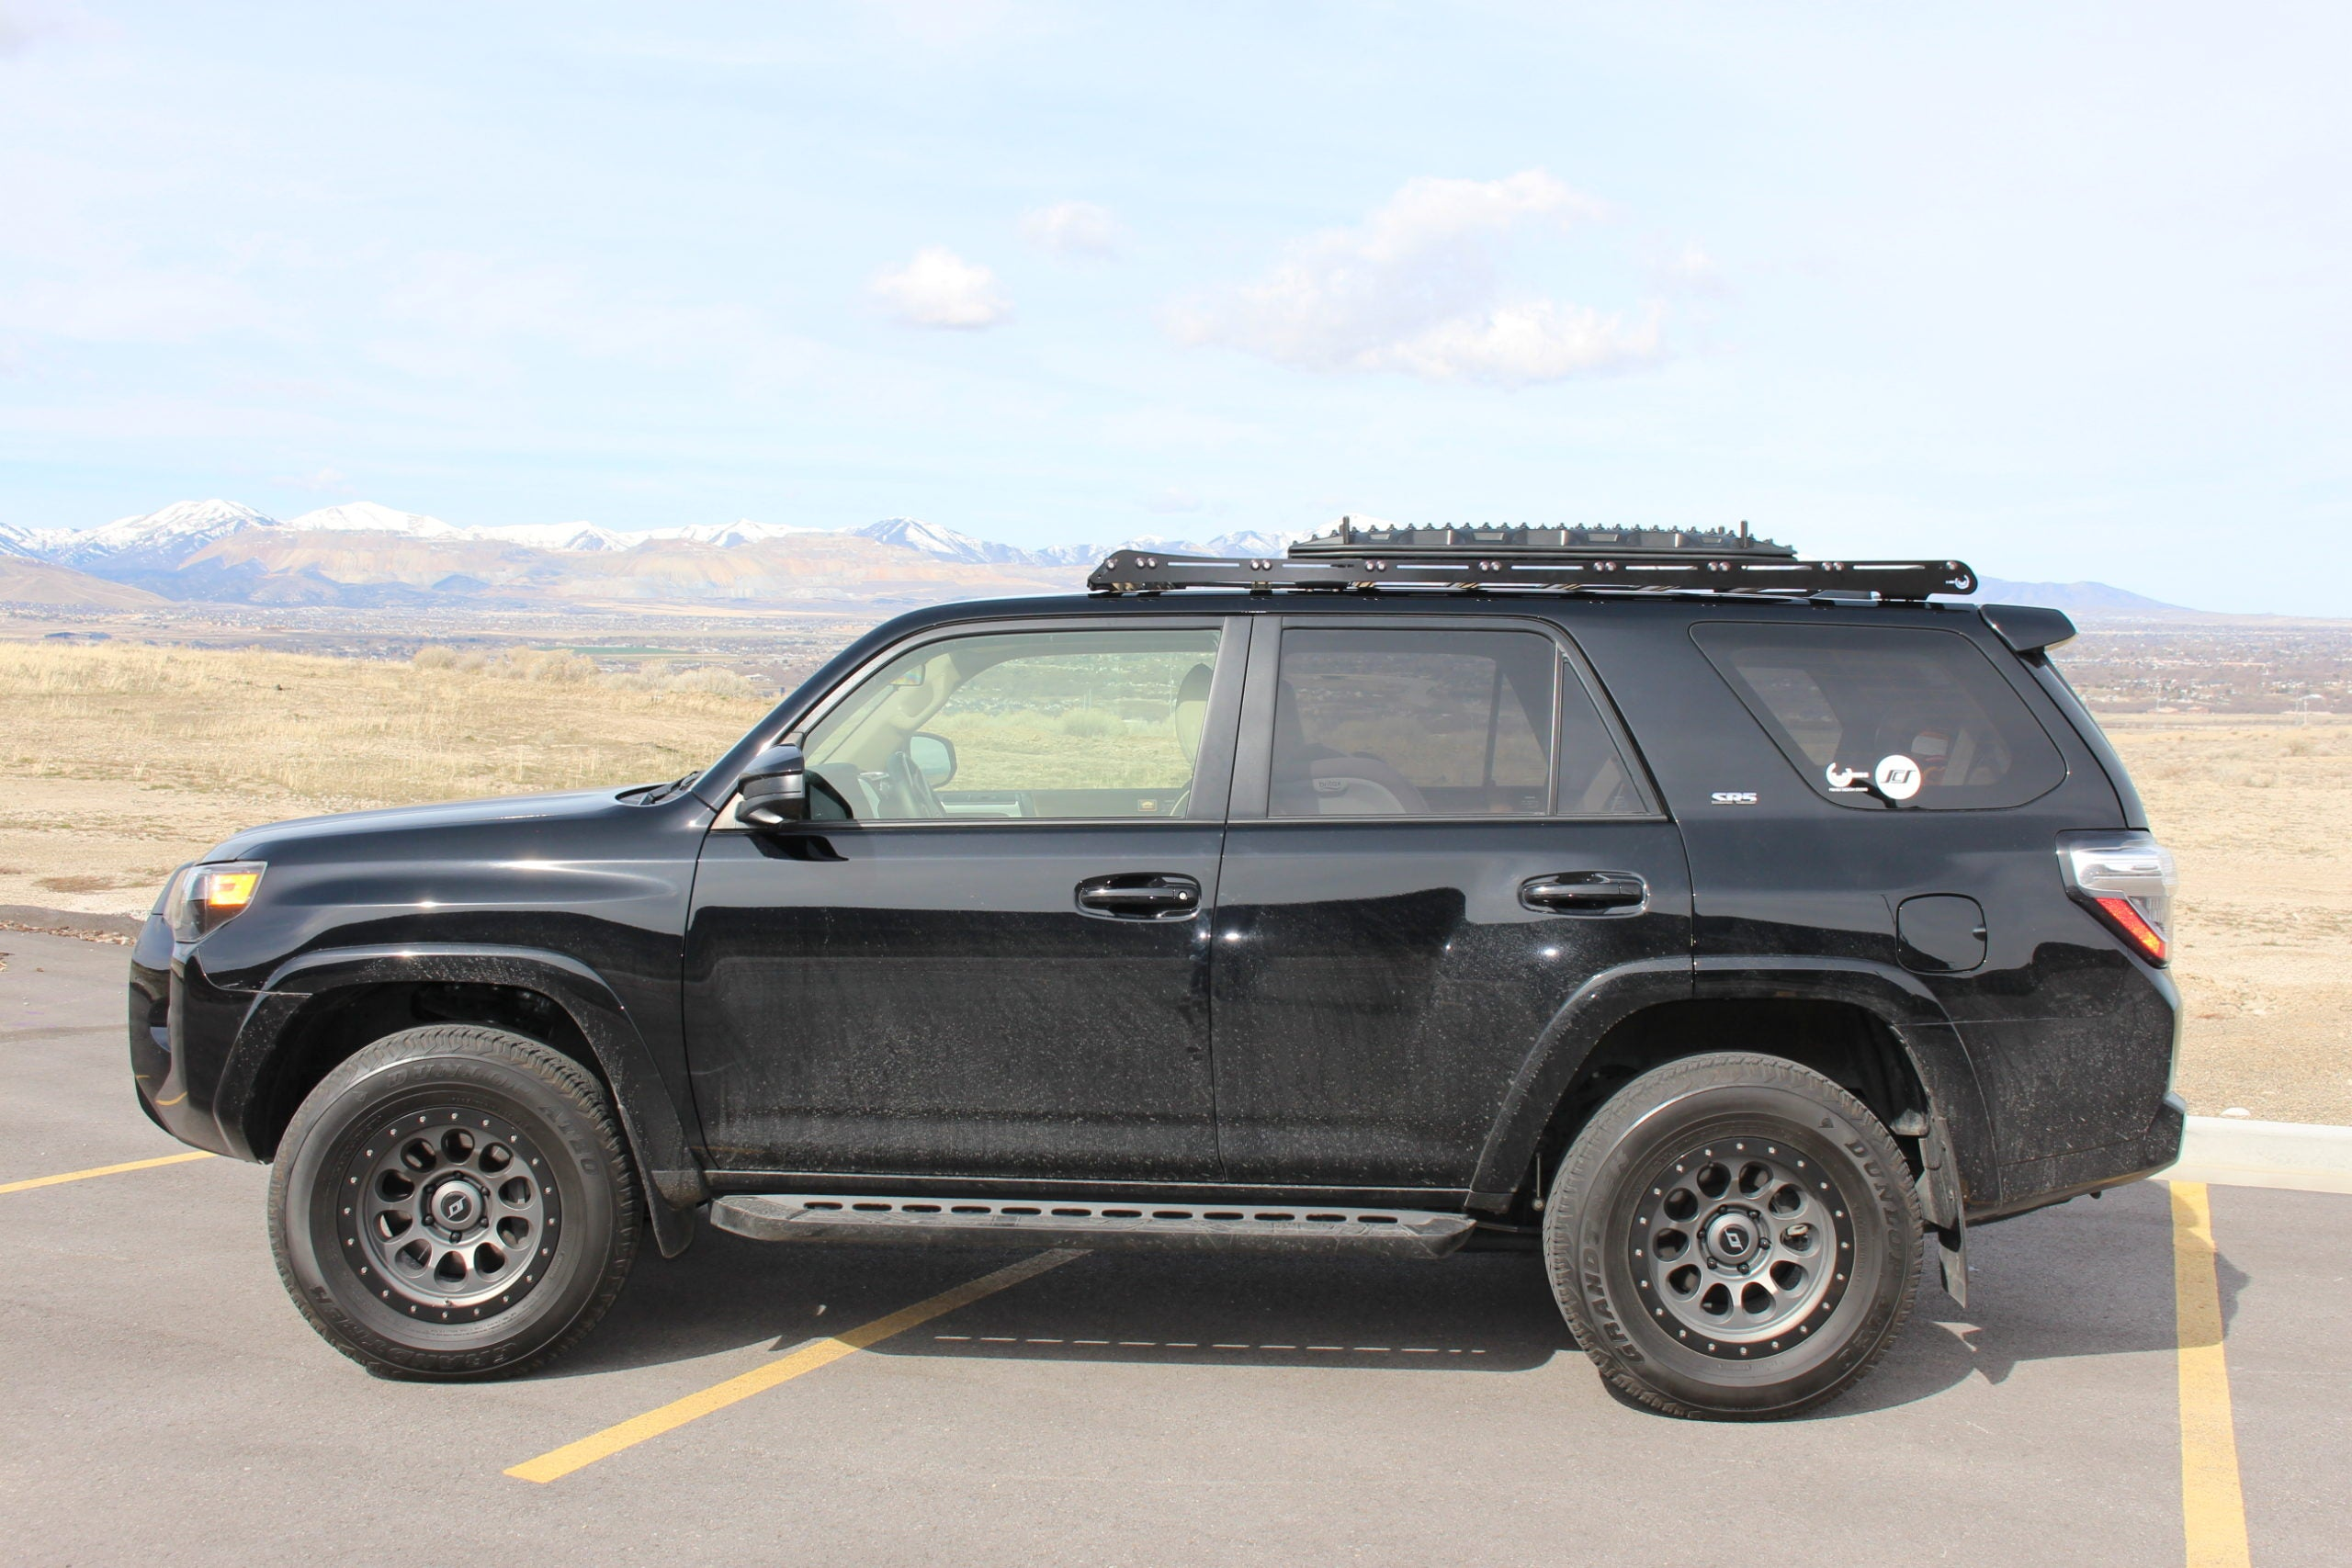 Prinsu Roof Rack 7/8 Length - Toyota 4Runner 5th Gen 2010 -2020 - 4x4 Runners